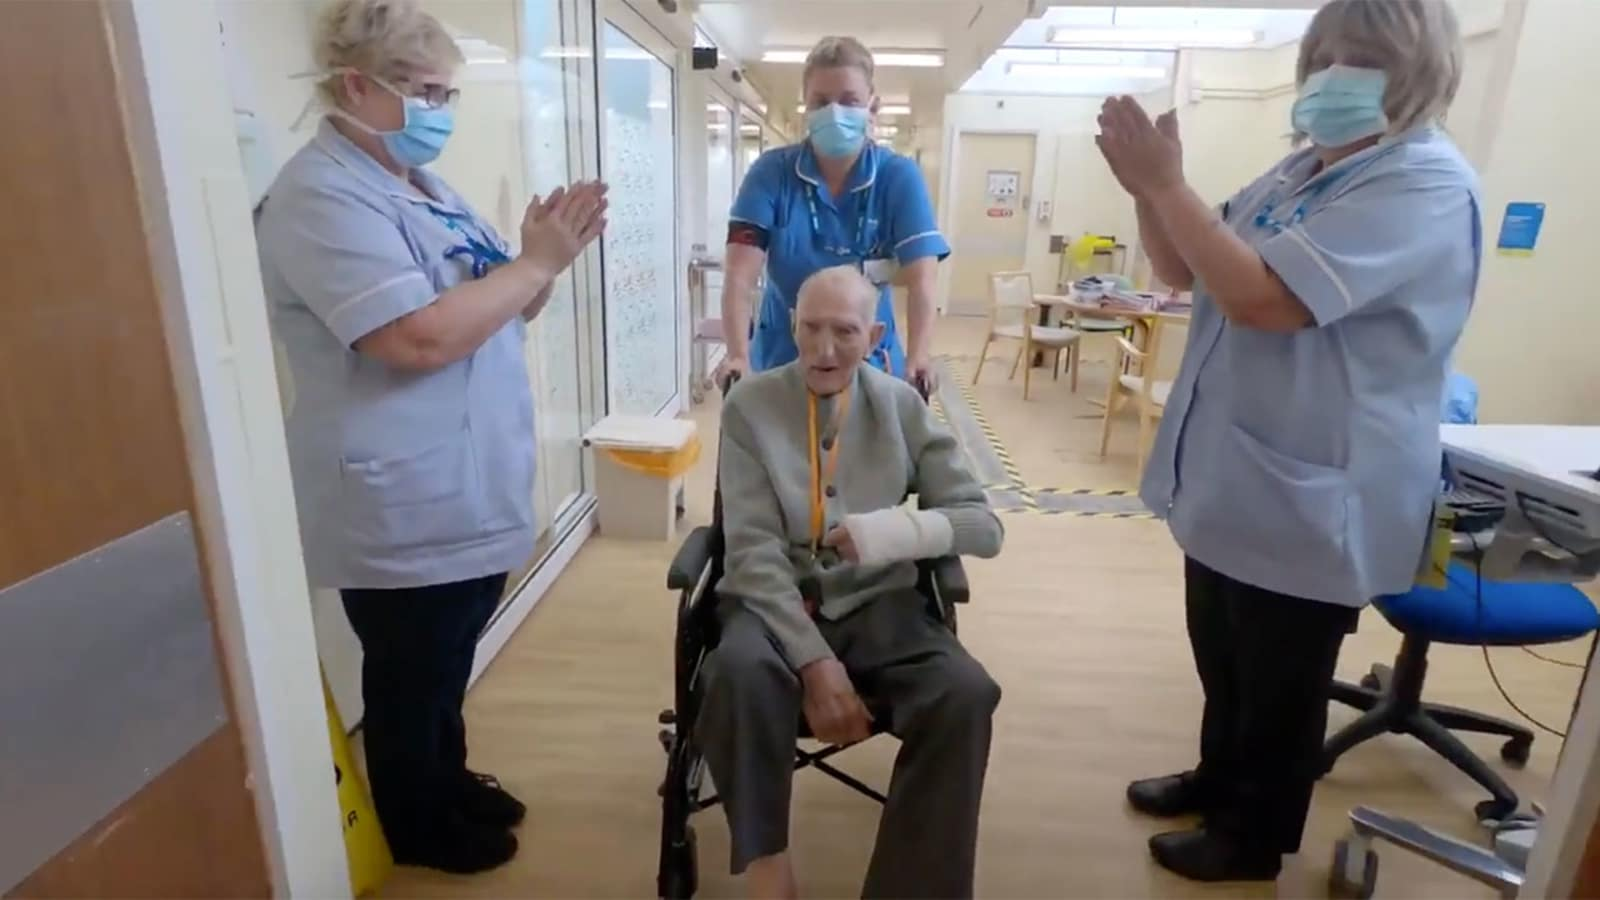 99-year-old WWII vet albert chambers gets applause after beating coronavirus